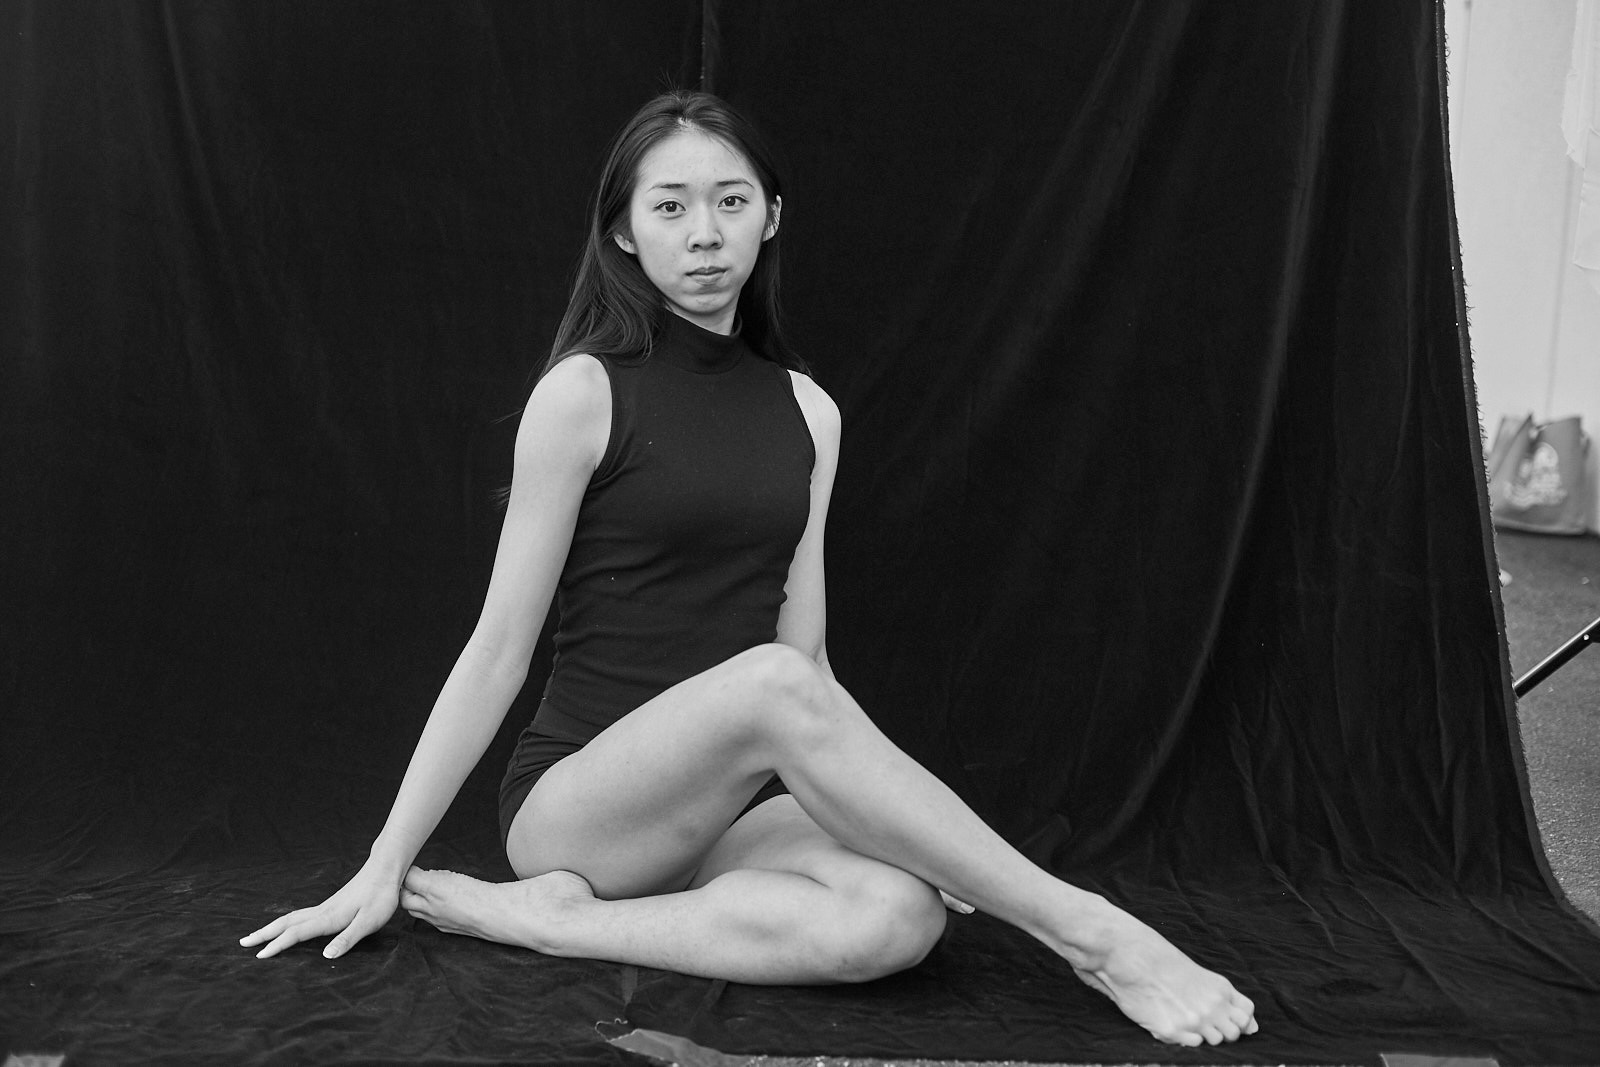 lisa-performing-arts-sophia-liu-photography-IMG_3713x1600.jpg